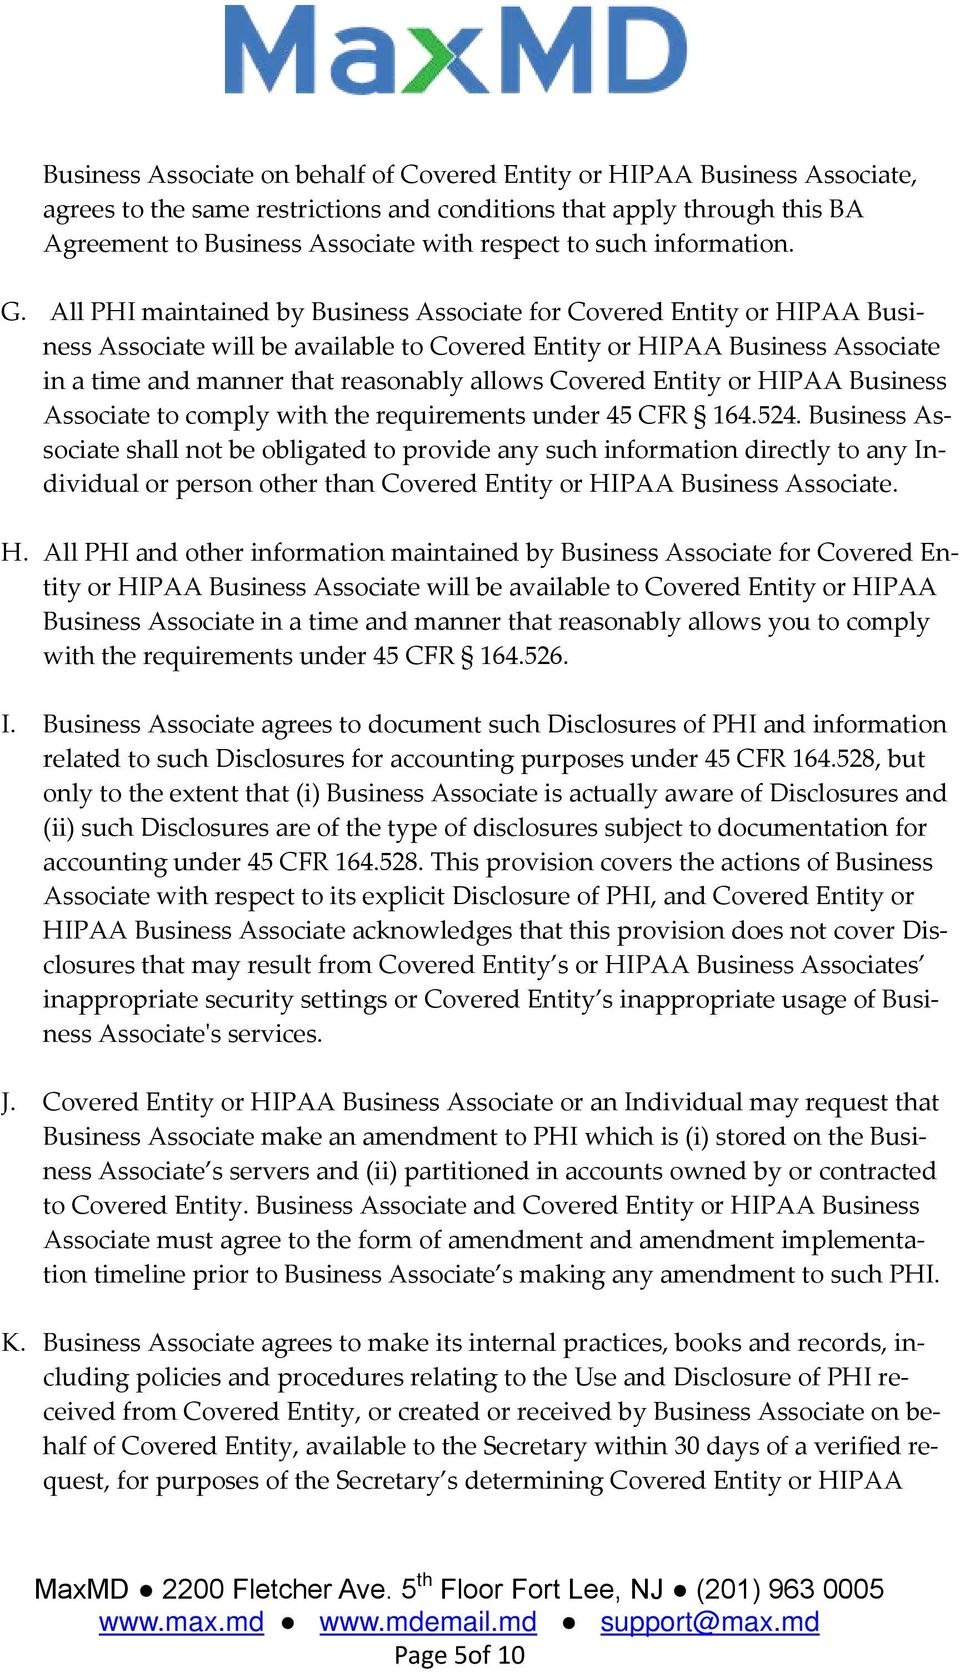 All PHI maintained by Business Associate for Covered Entity or HIPAA Business Associate will be available to Covered Entity or HIPAA Business Associate in a time and manner that reasonably allows